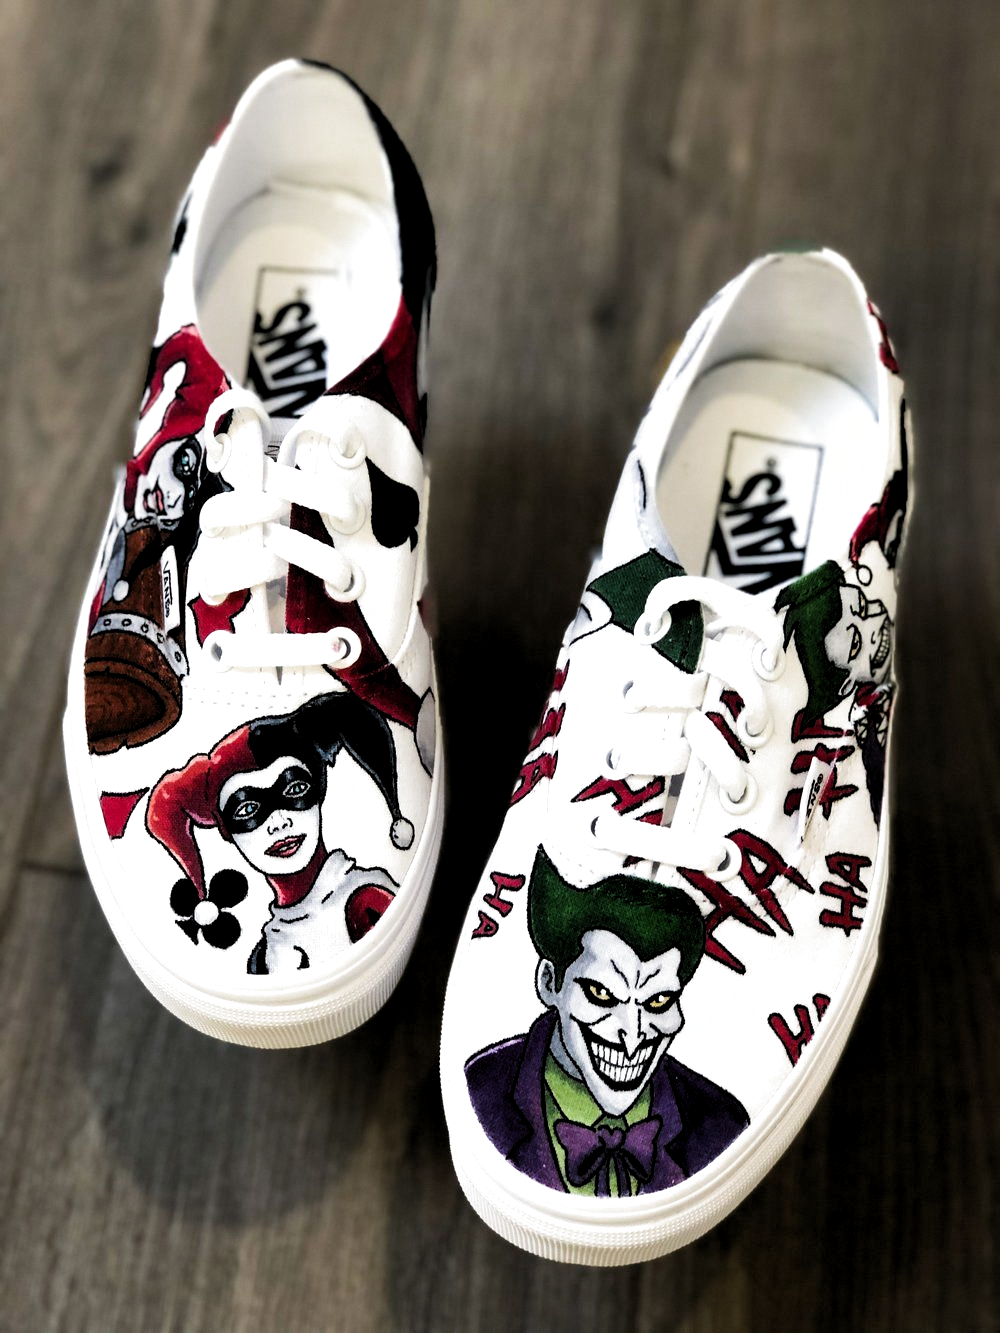 Pin by mireia on gifts   Painted shoes diy, Custom vans shoes, Diy ...